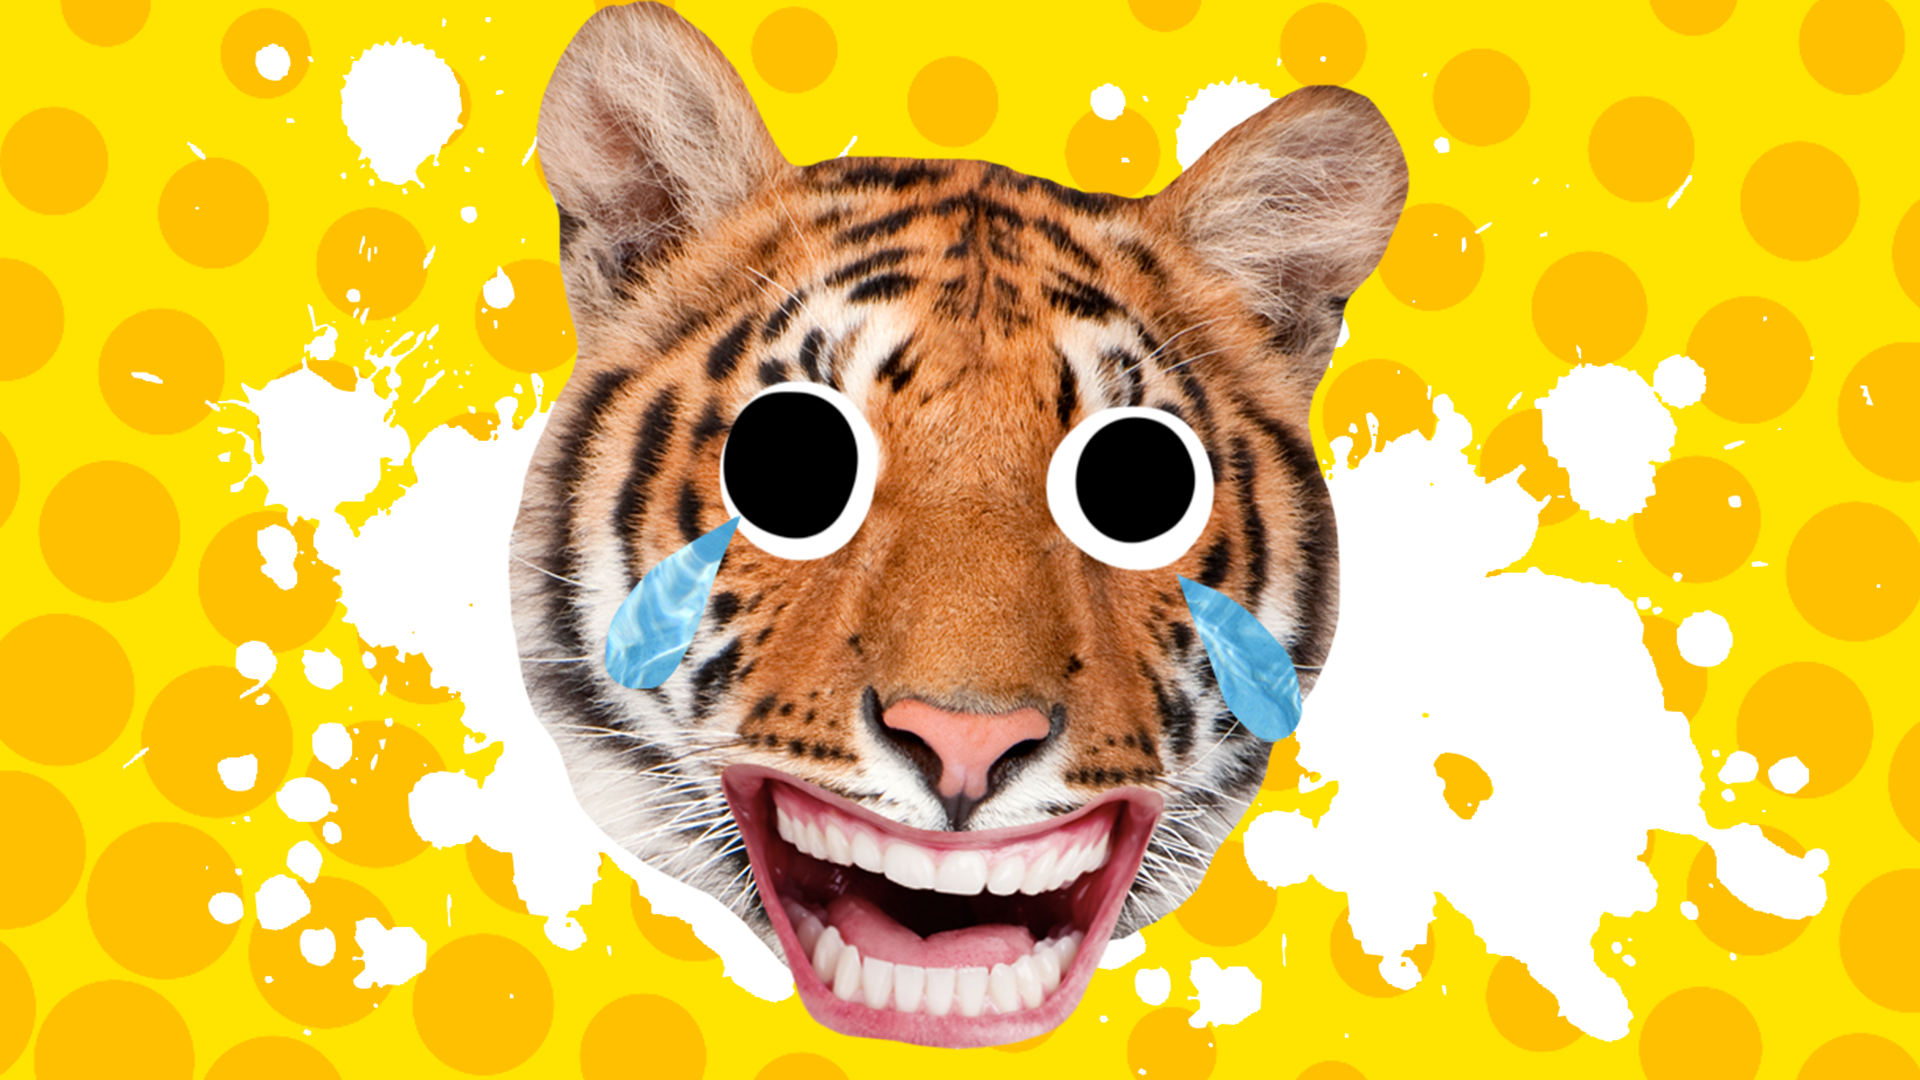 A laughing Bengal tiger in front of a yellow spotted background